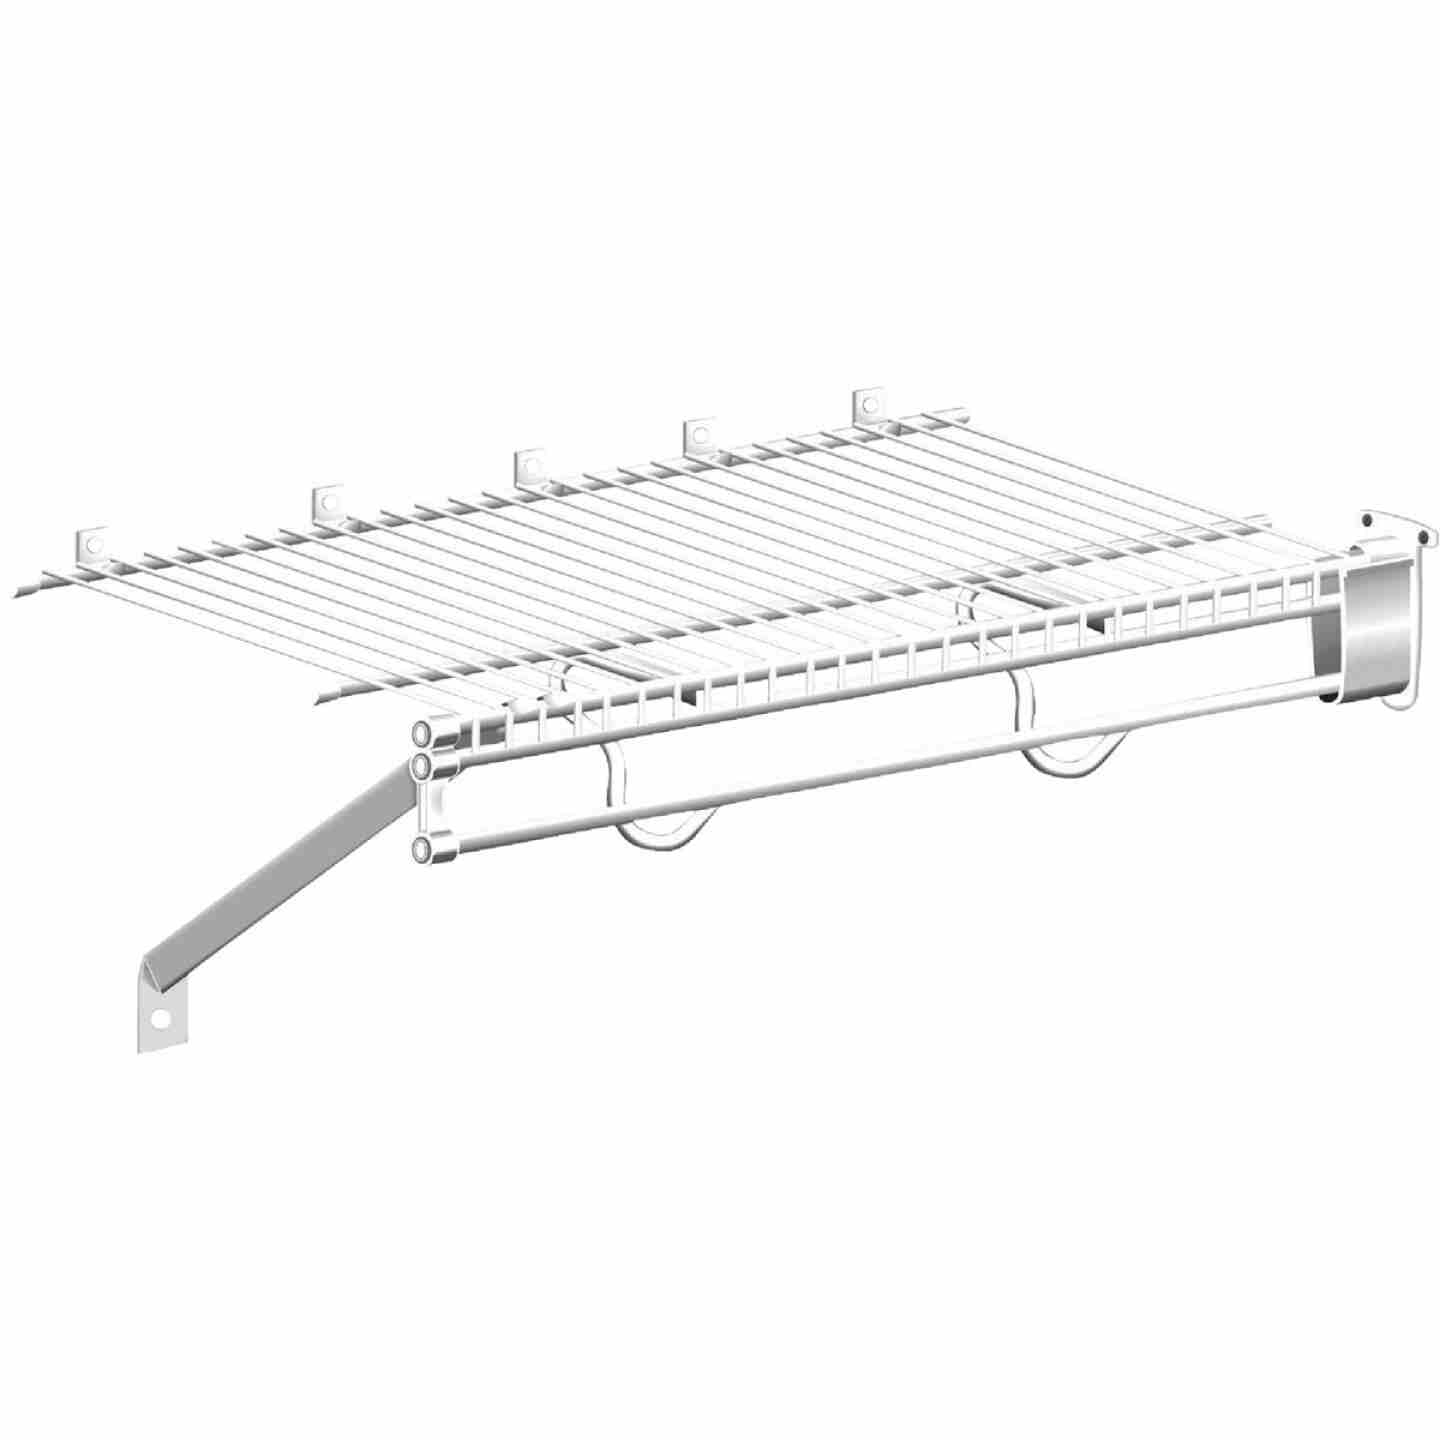 ClosetMaid TotalSlide 12 Ft. W. x 16 In. D. Contractor Pack Ventilated Wire Shelf & Rod, White (6-Pack) Image 2